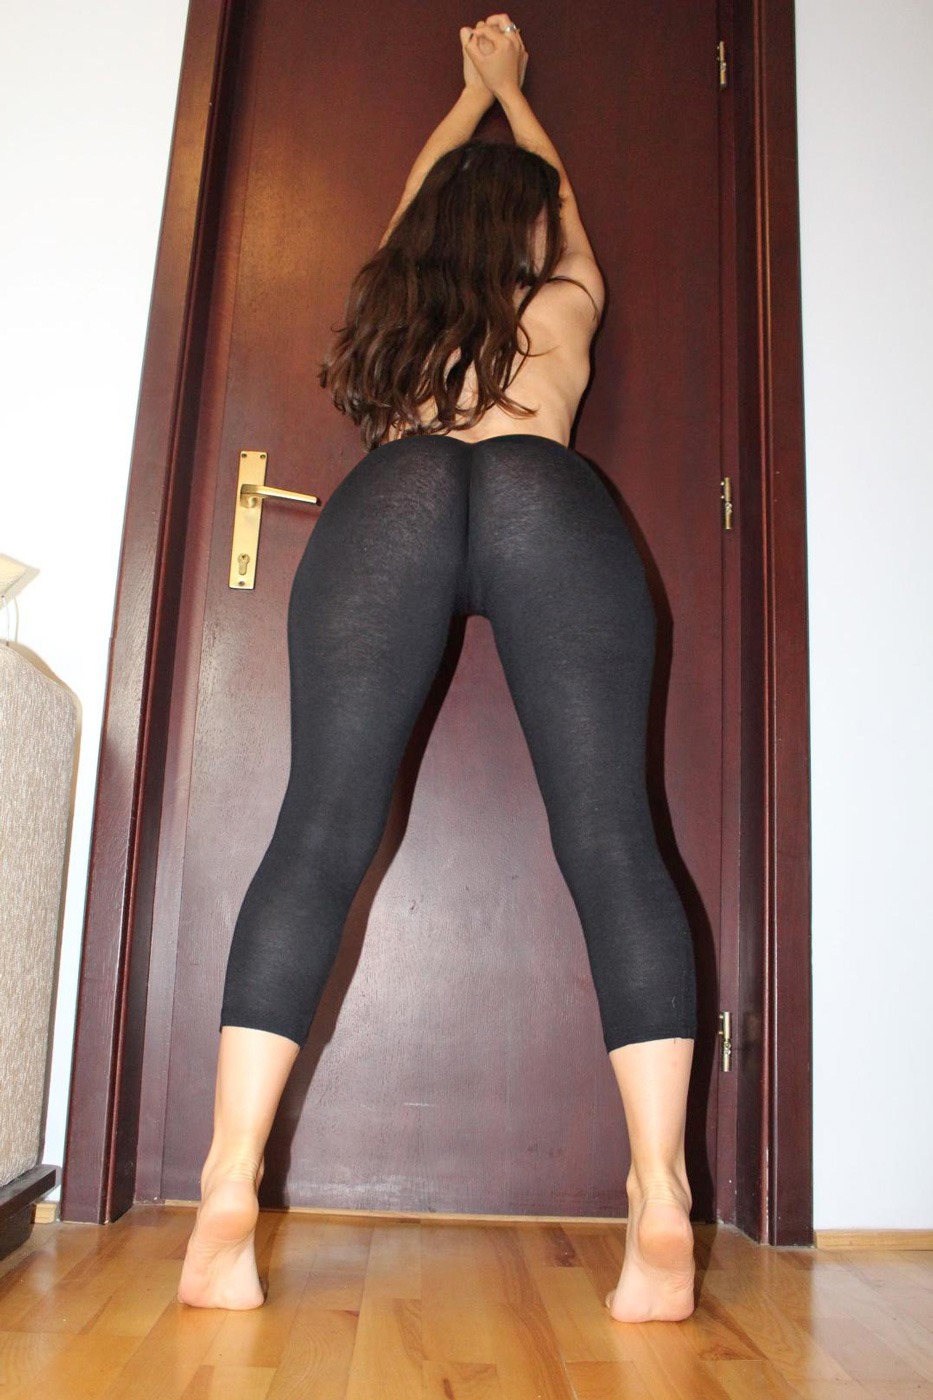 Taste what Girls in see through pants booty nude not